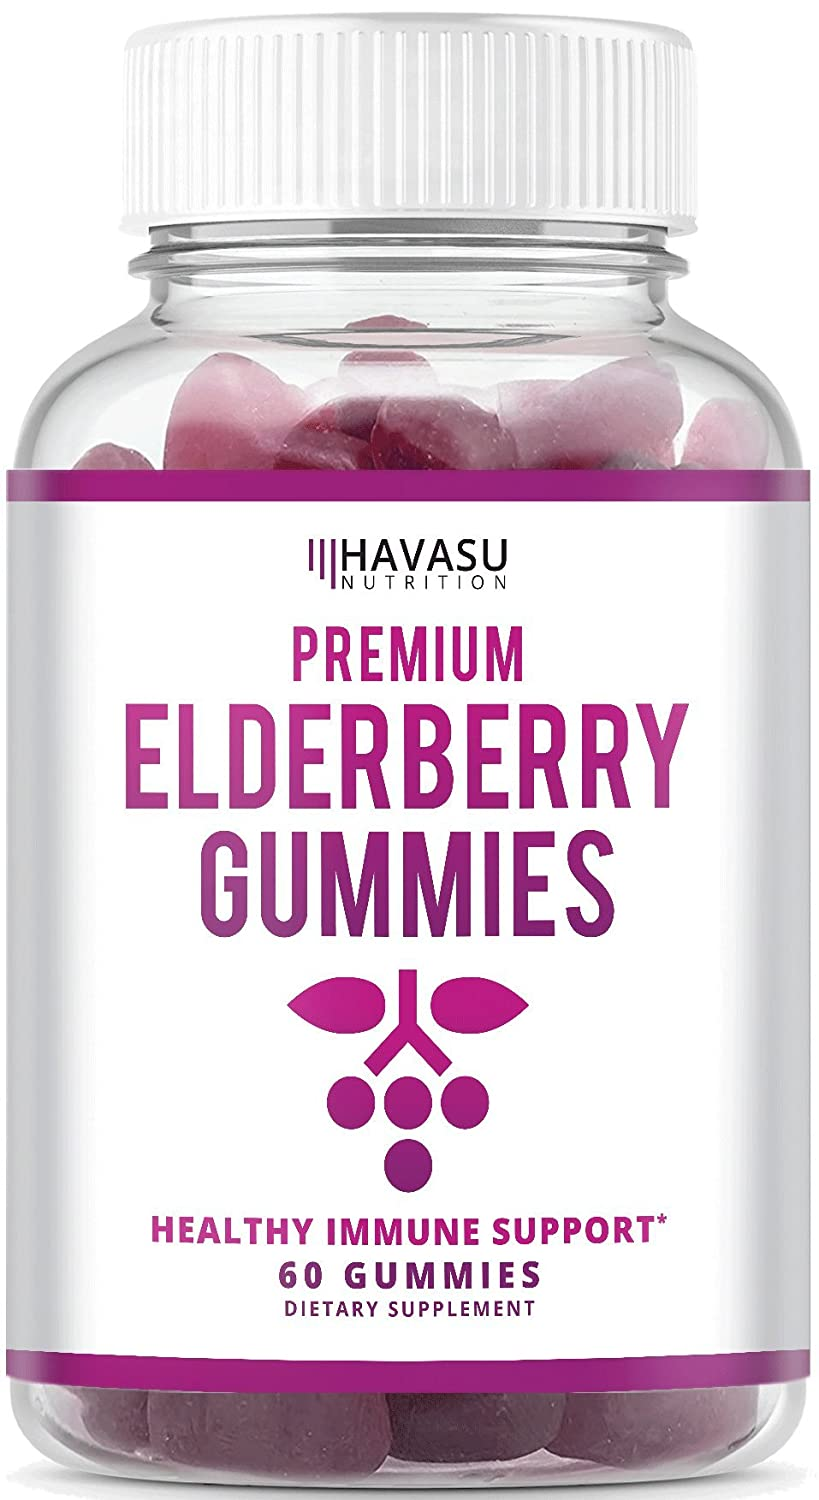 Havasu Nutrition Elderberry Gummies - Supports Immune System Health - Made with Premium Plant-Based Pectin - NO Gelatin, NO Fructose Corn Syrup, Gluten Free - Natural Ingredients, 60 Gummies